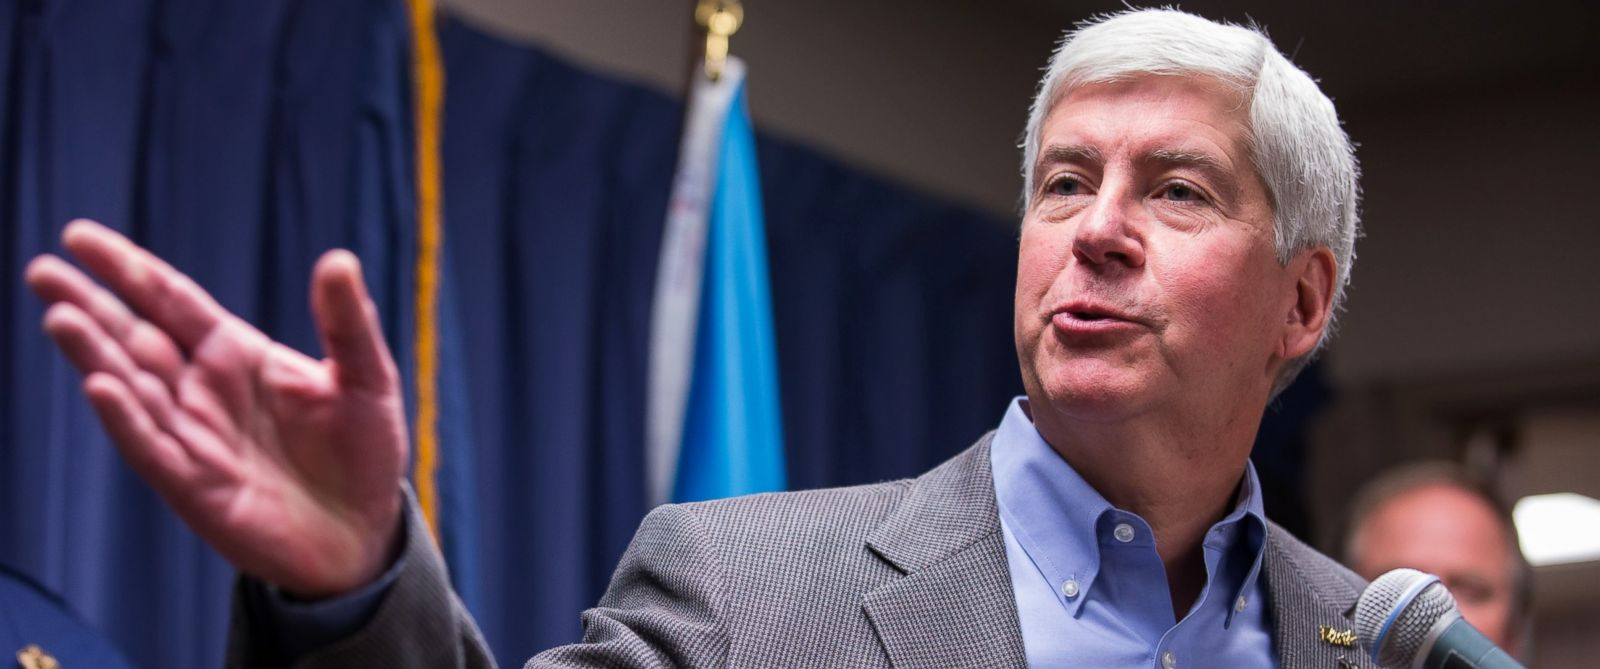 PHOTO: Michigan Gov. Rick Snyder speaks to the media regarding the status of the Flint water crisis, Jan. 27, 2016, at Flint City Hall in Flint, Michigan.